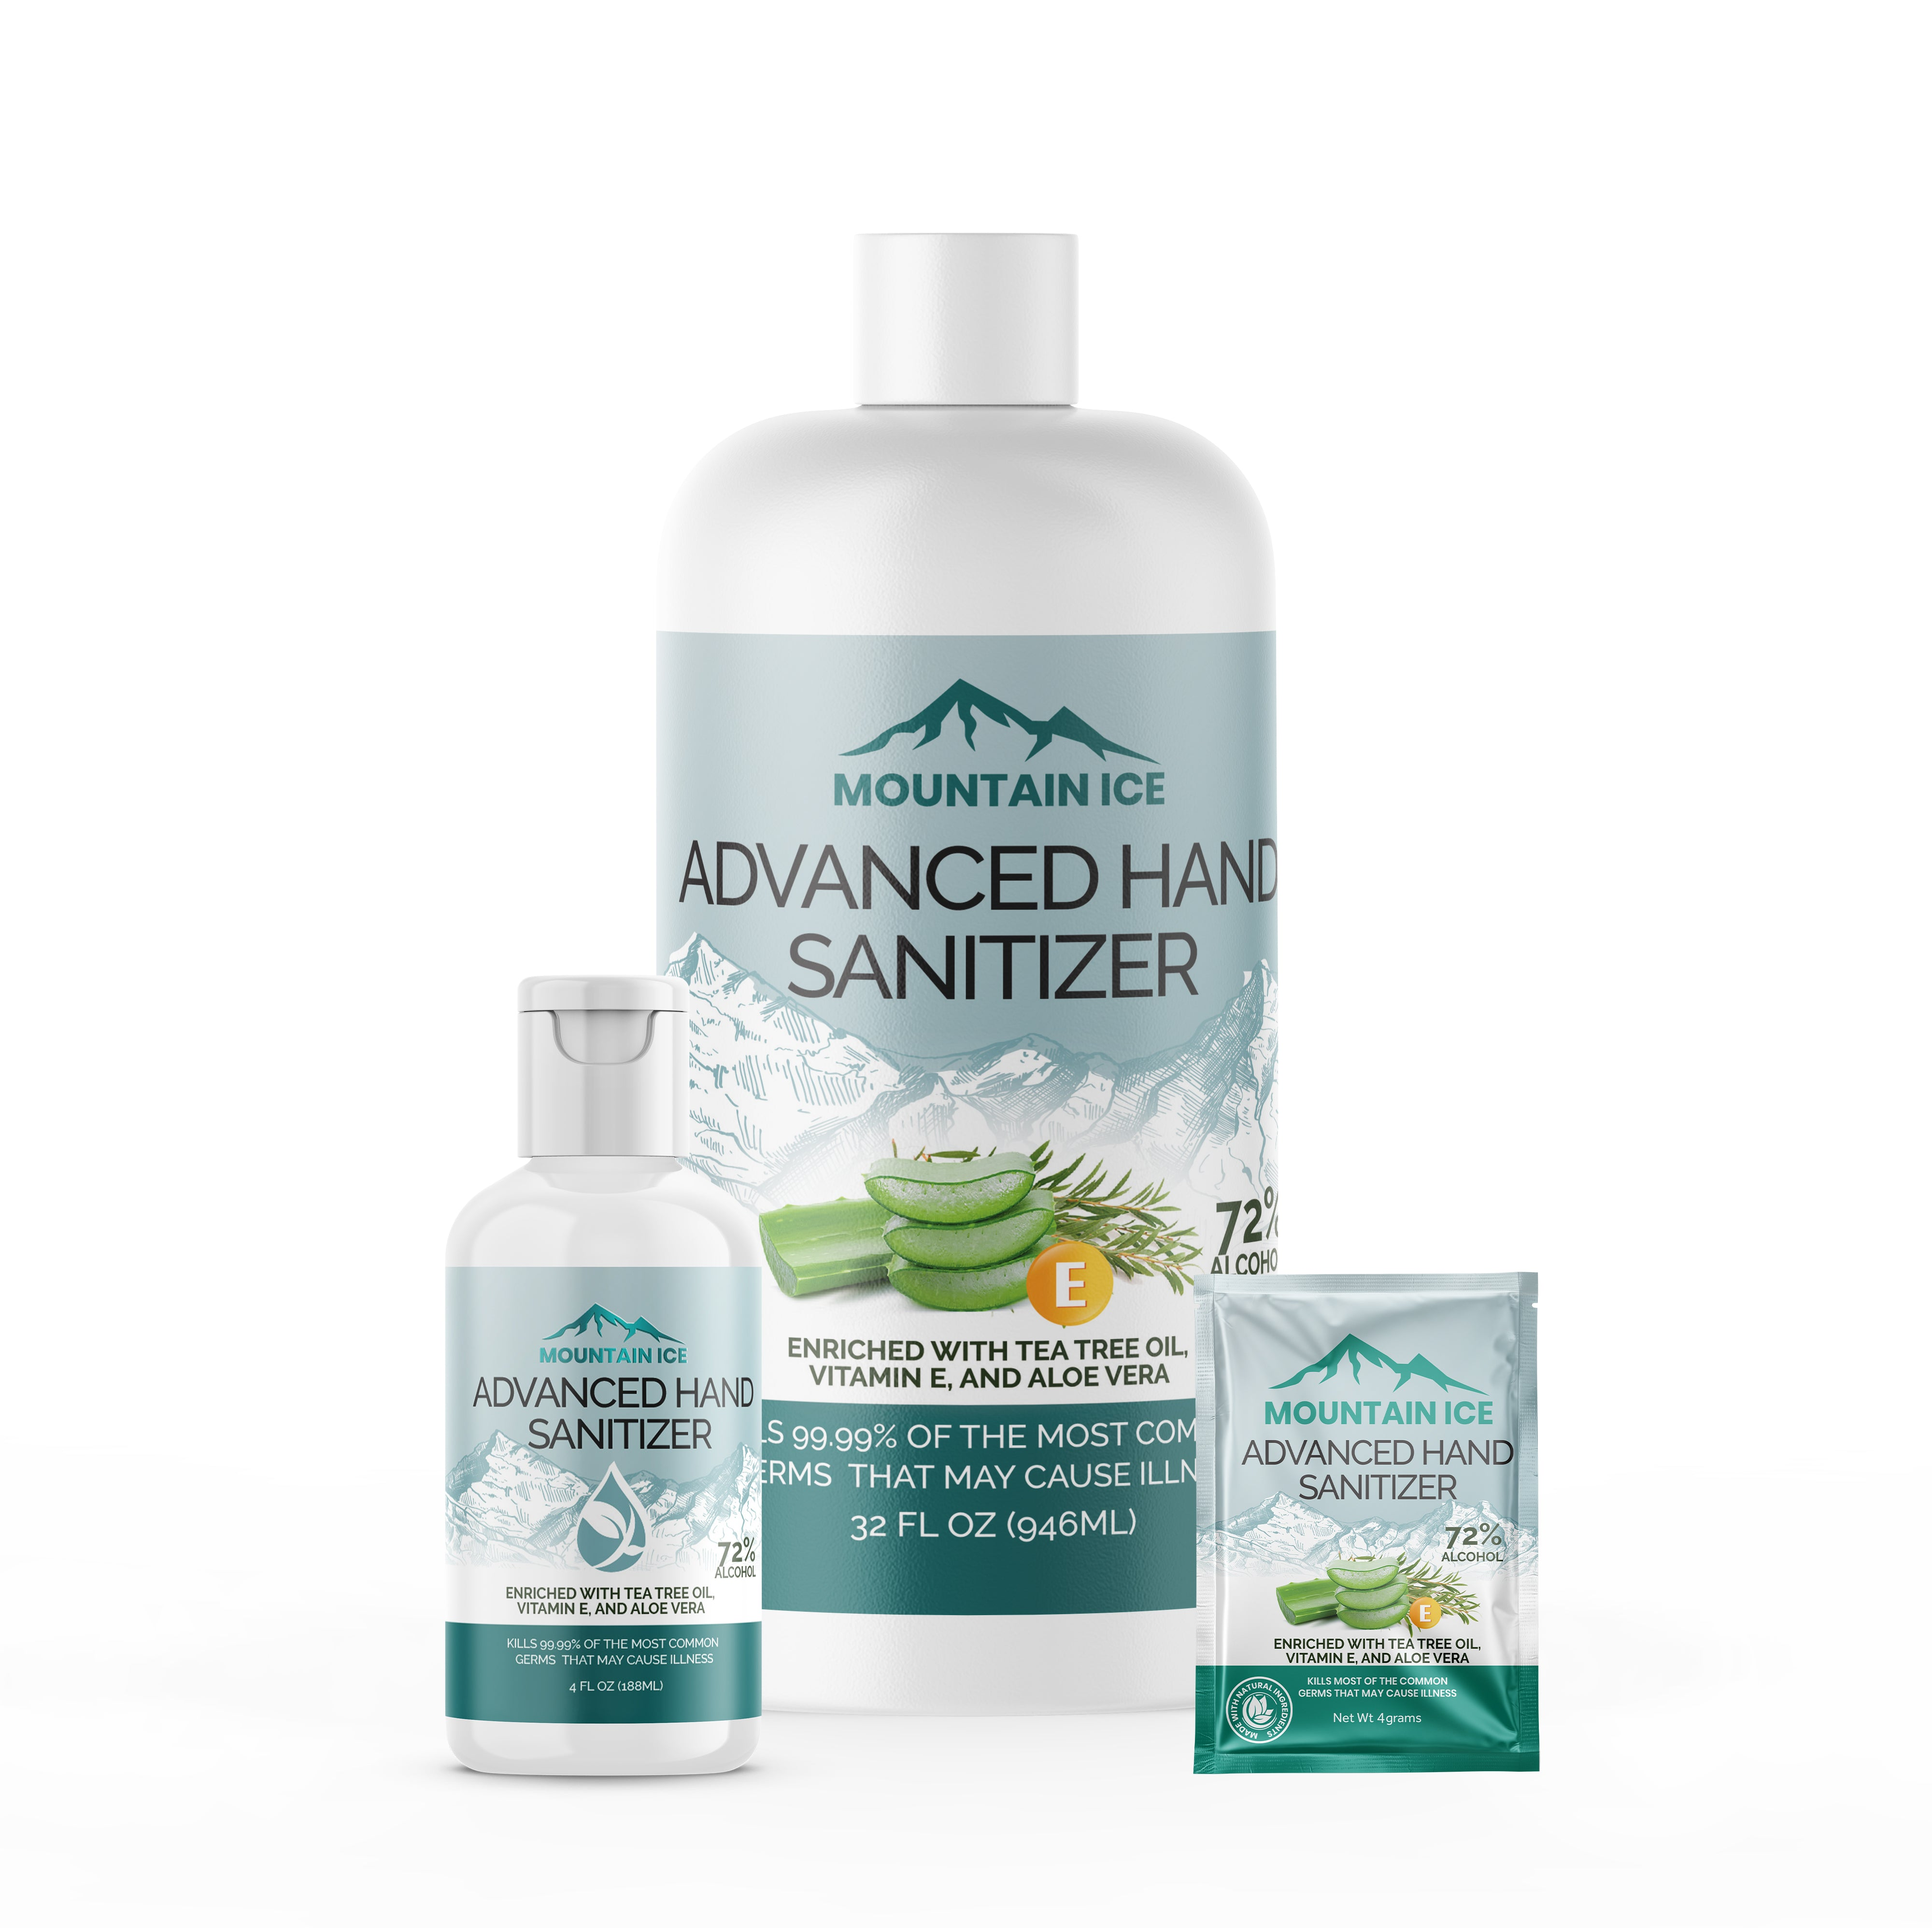 Mountain Ice Advanced Hand Sanitizer